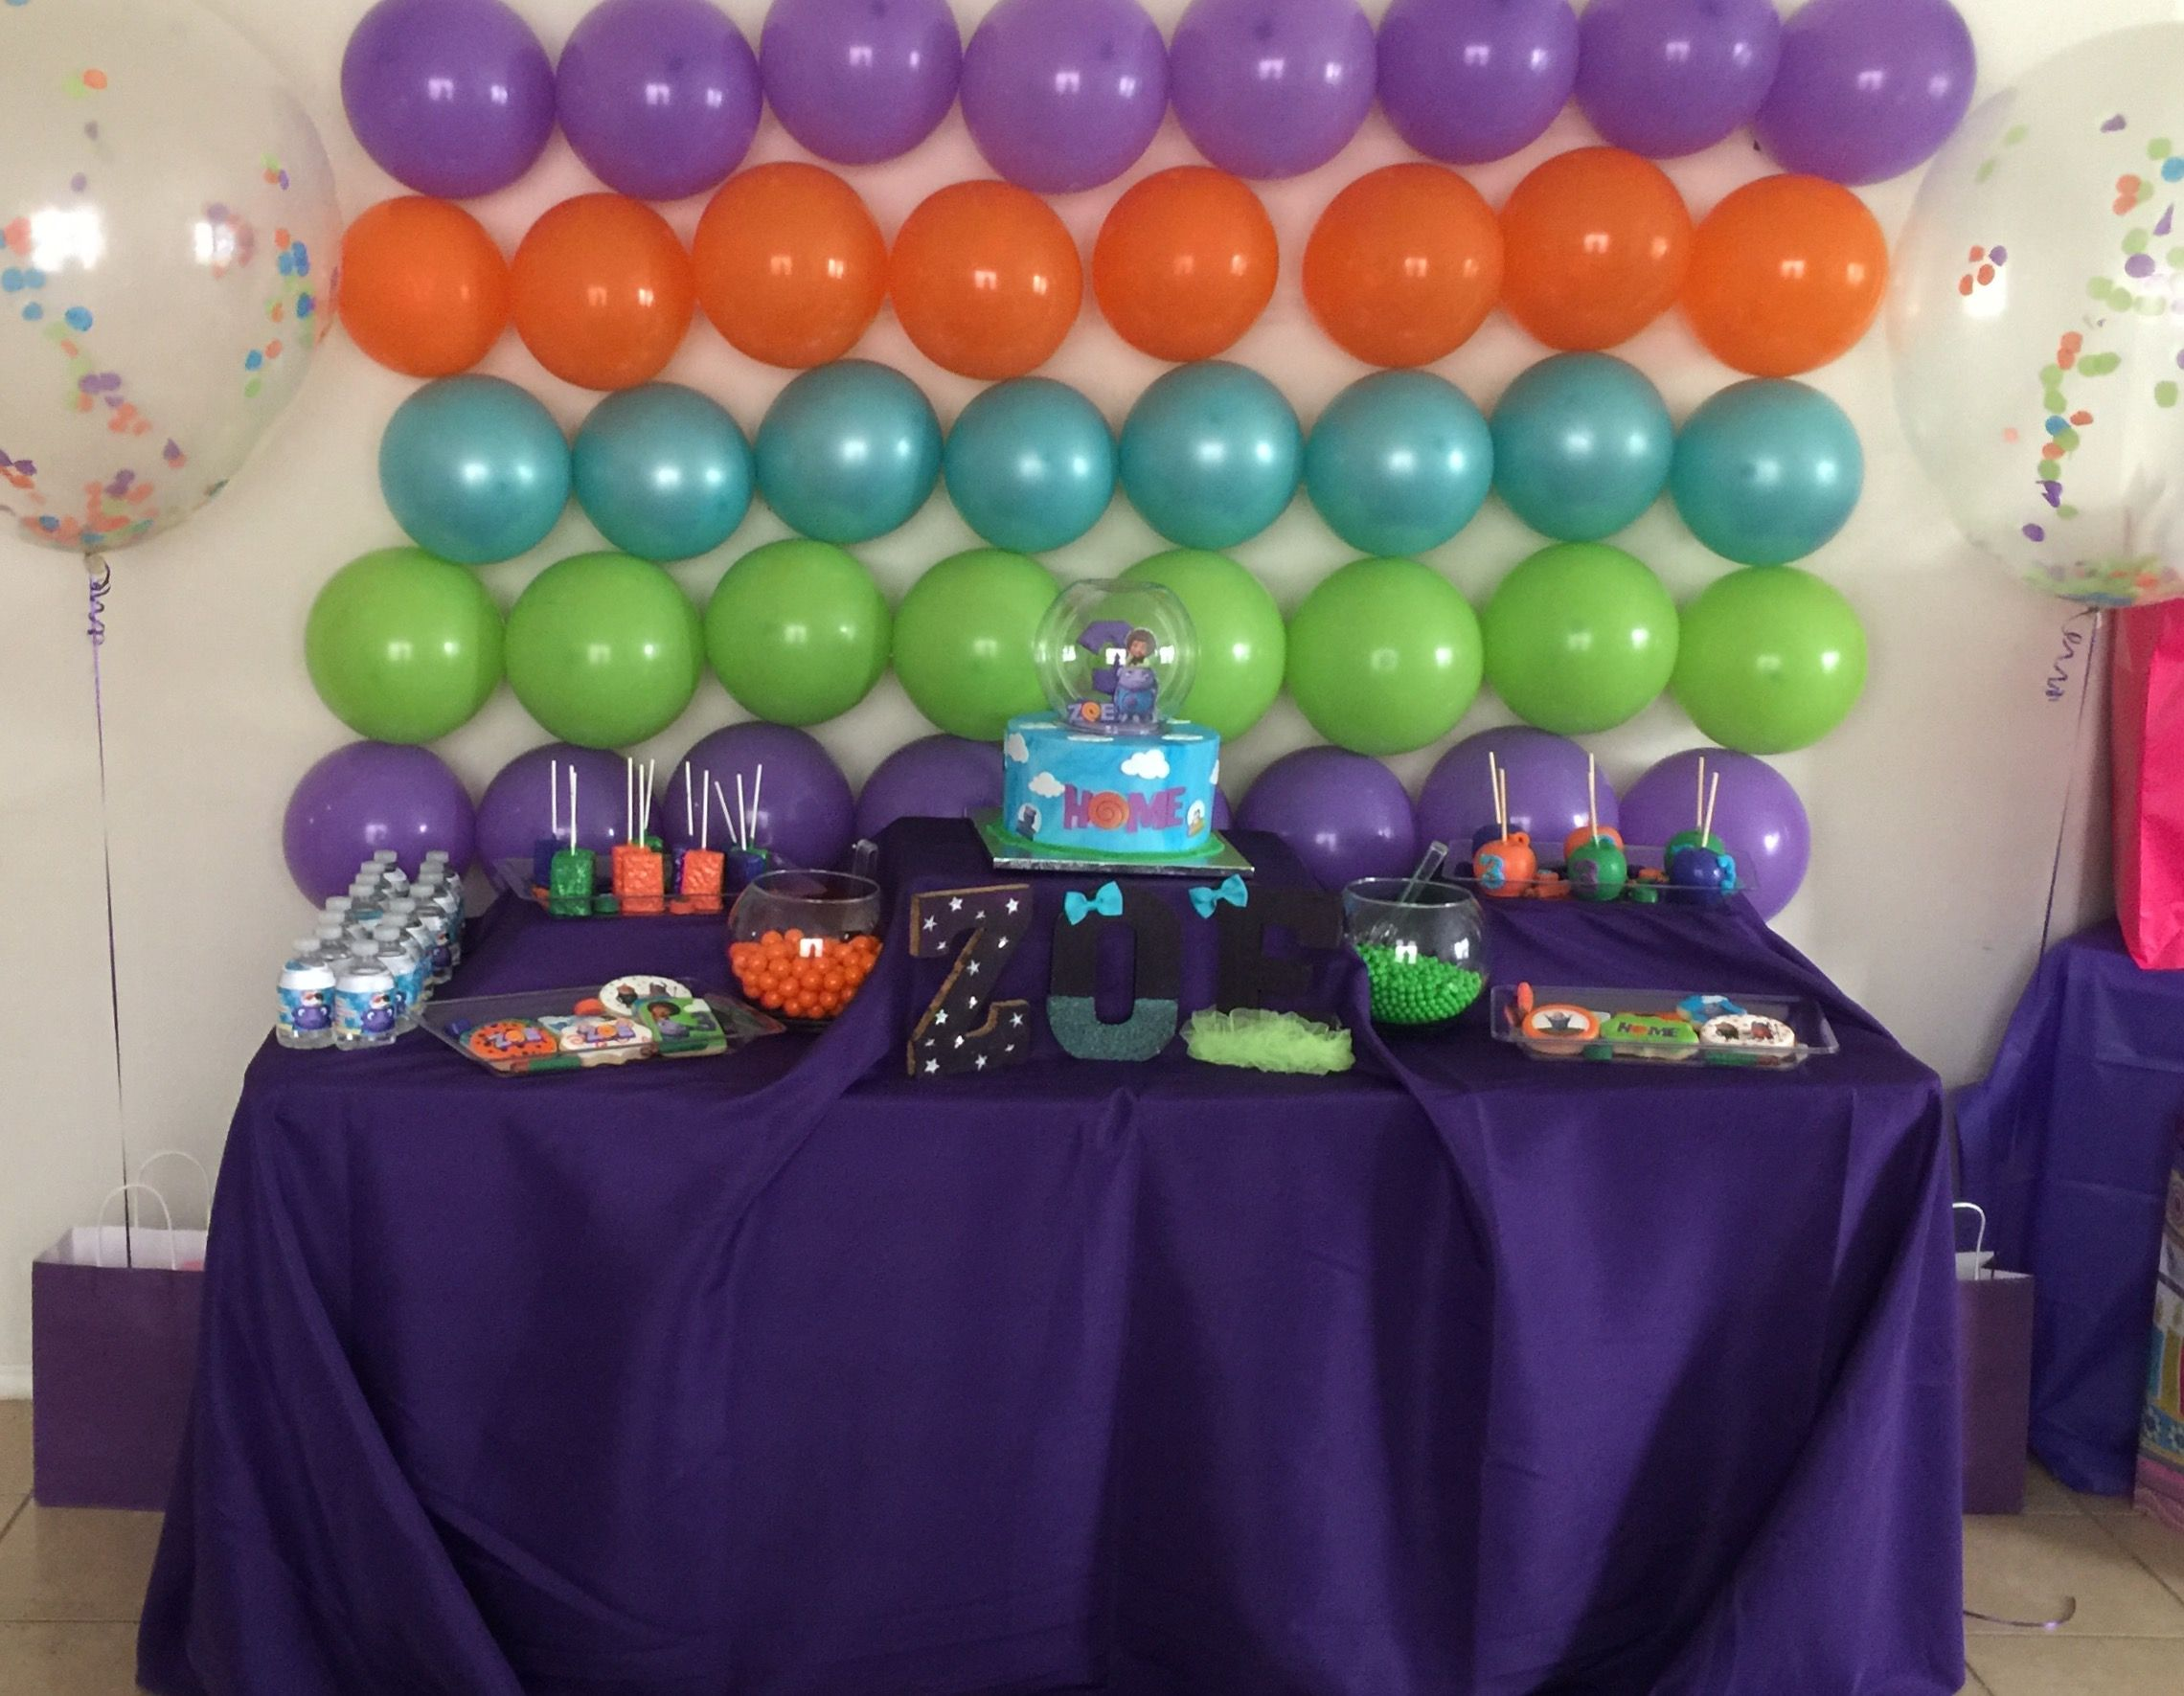 Dreamworks Home Boov Party Cake Table Balloon Backdrop Alien